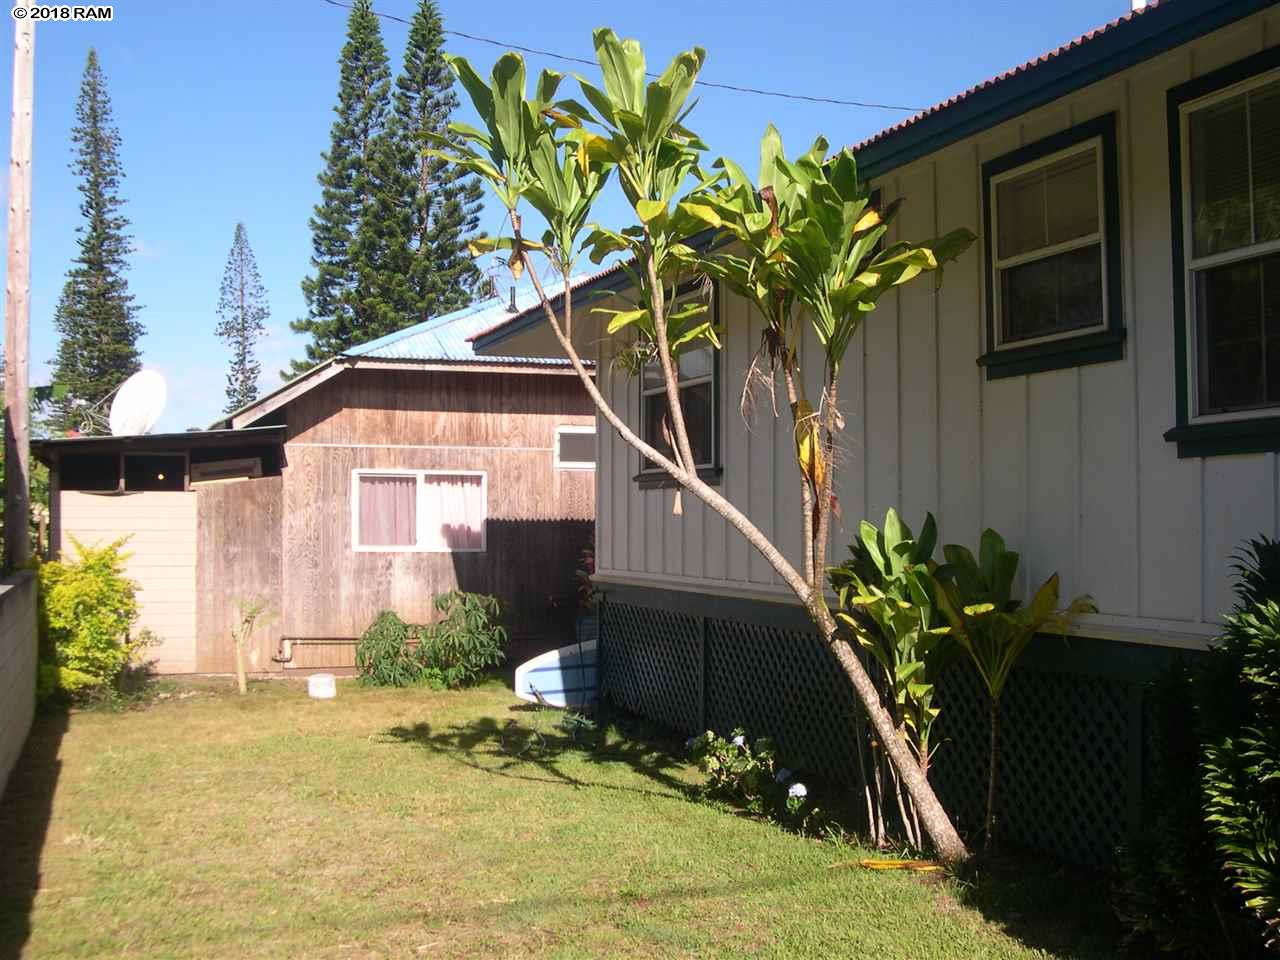 447 Lanai Ave in Lanai City